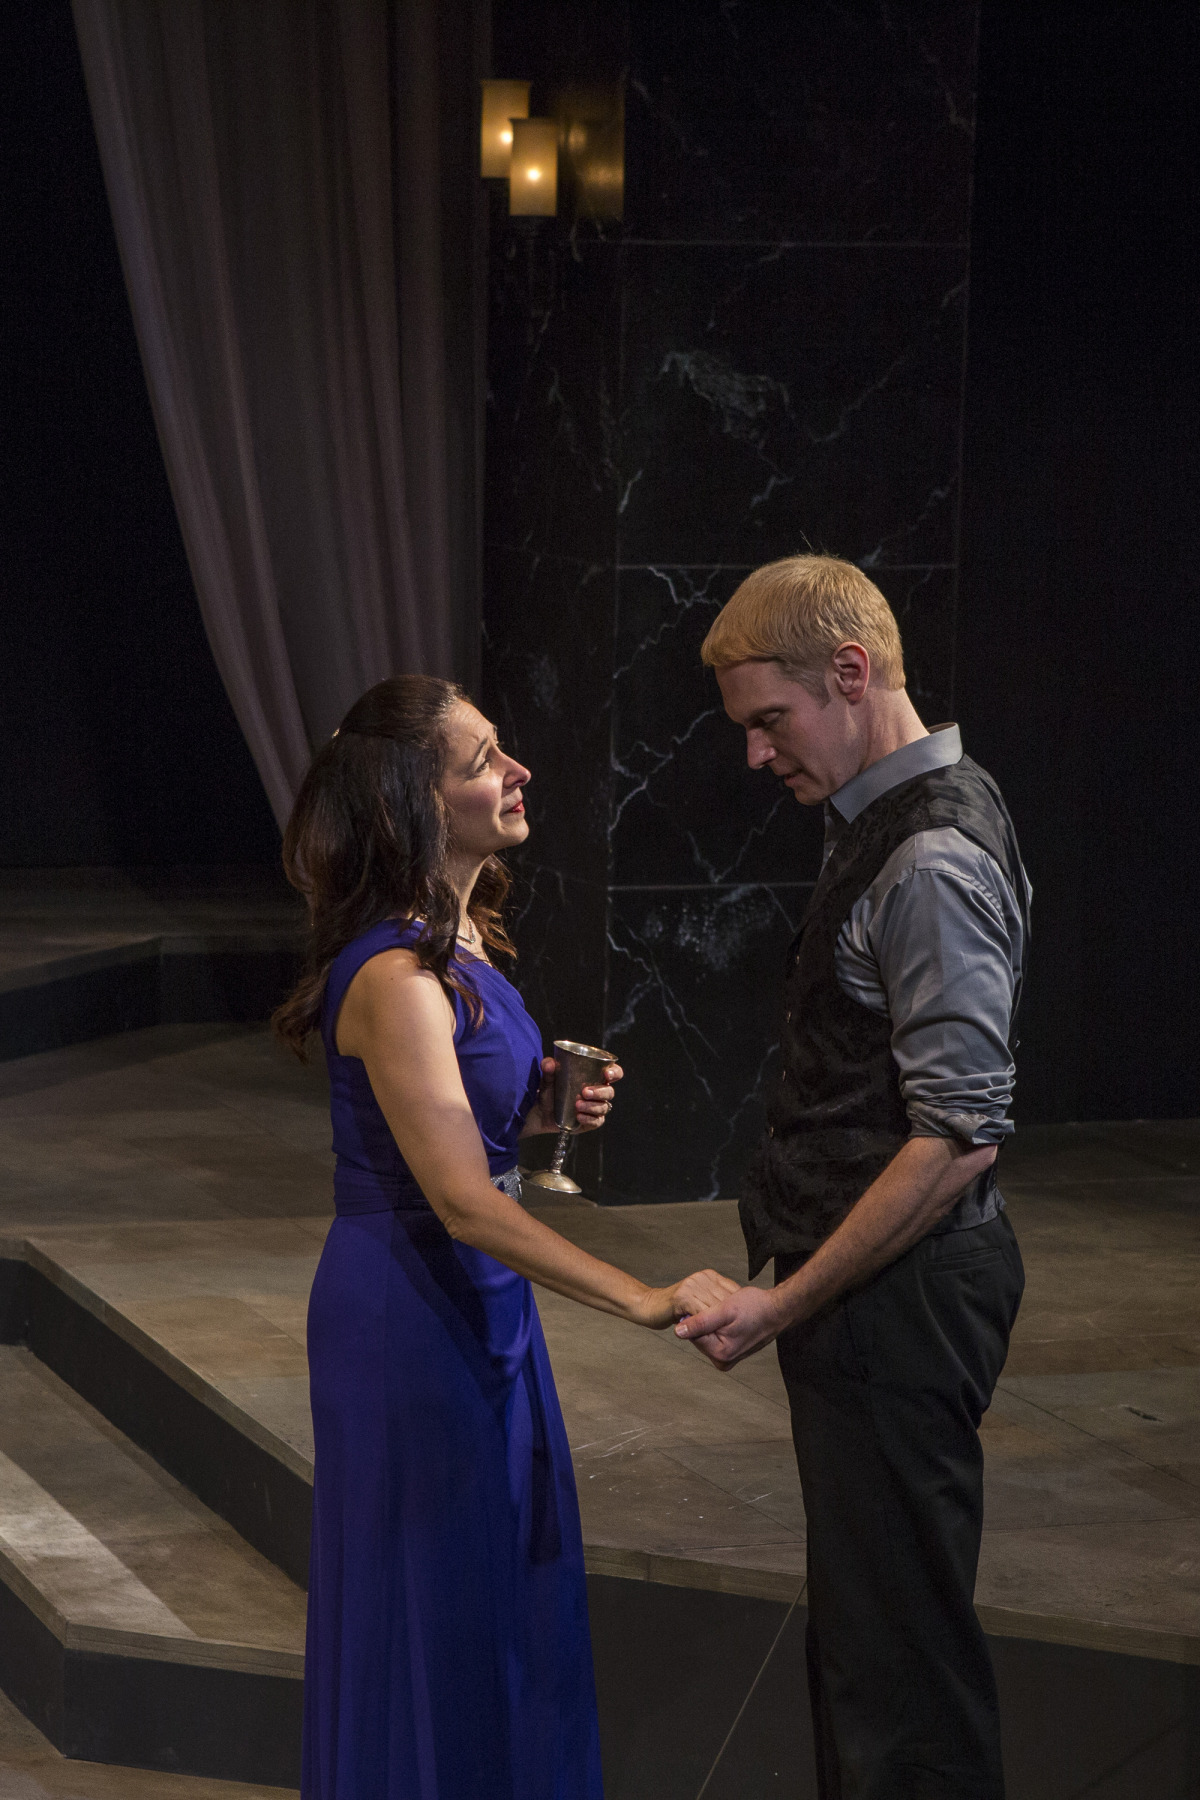 Amy Herzberg and Grant Goodman in Hamlet (2014). Photo by Beth Hall.